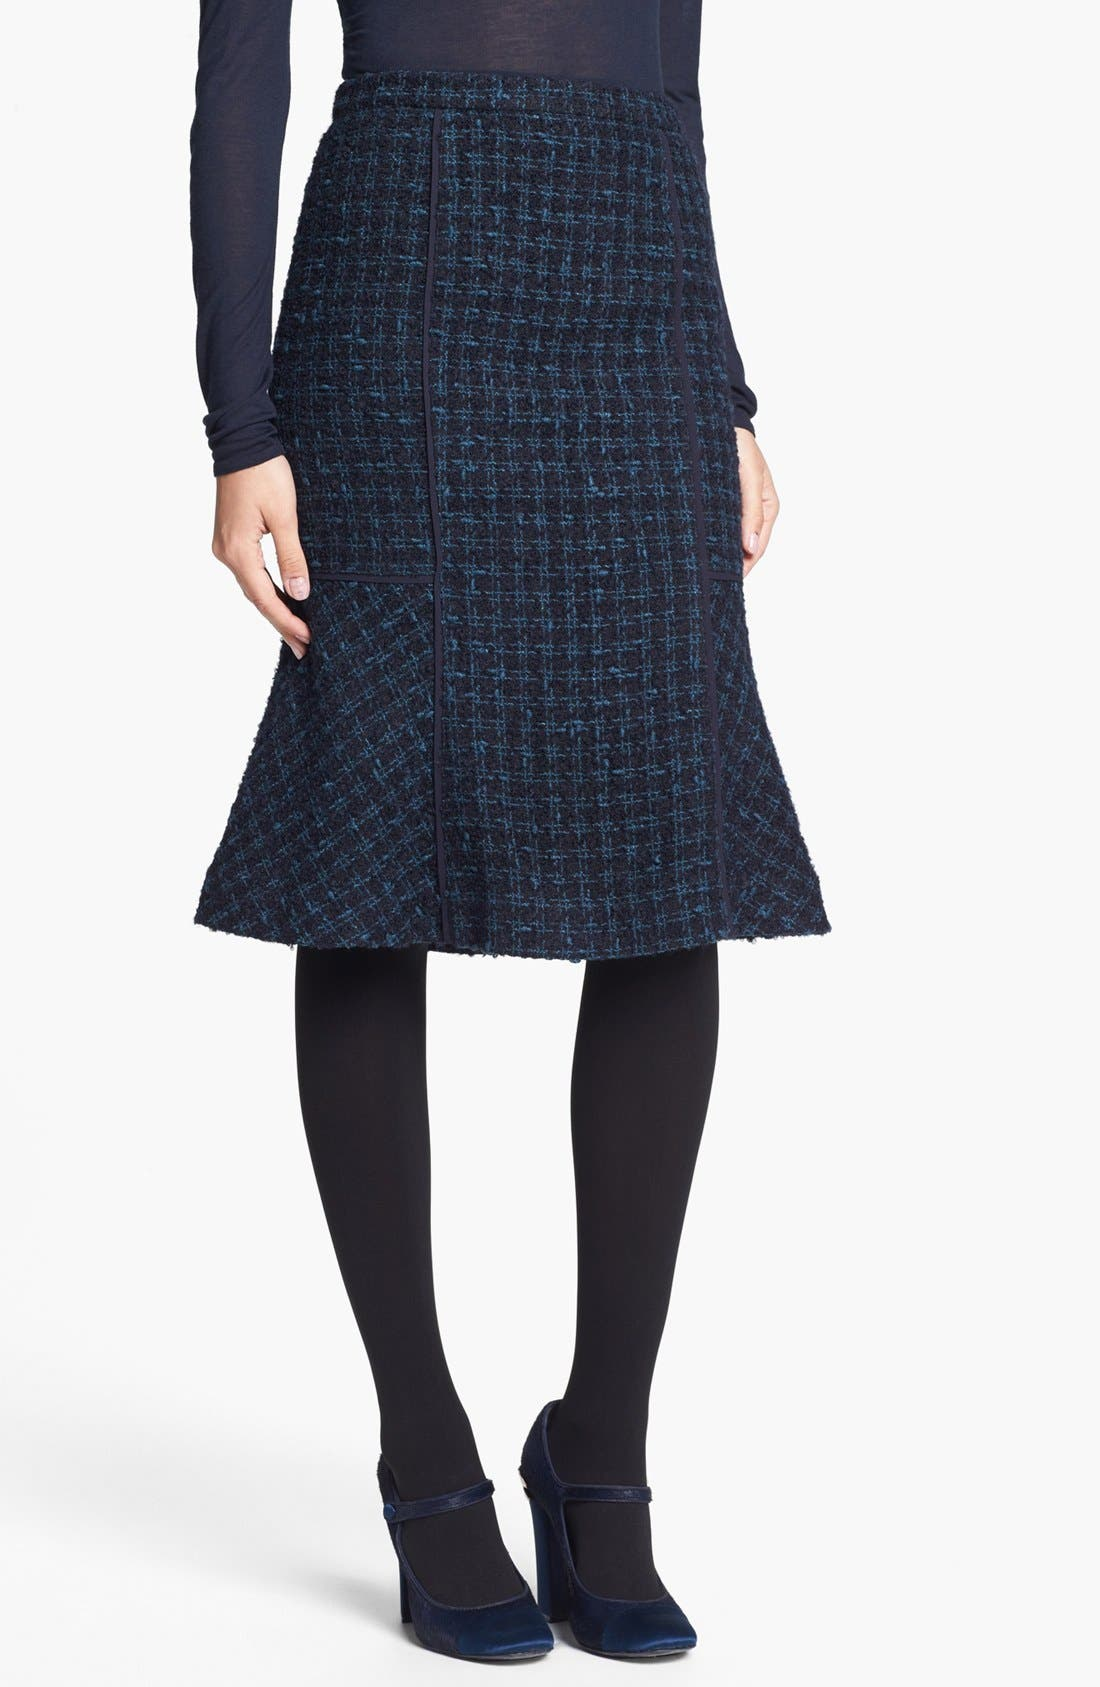 Main Image - Tory Burch 'Sloane' Tweed Skirt